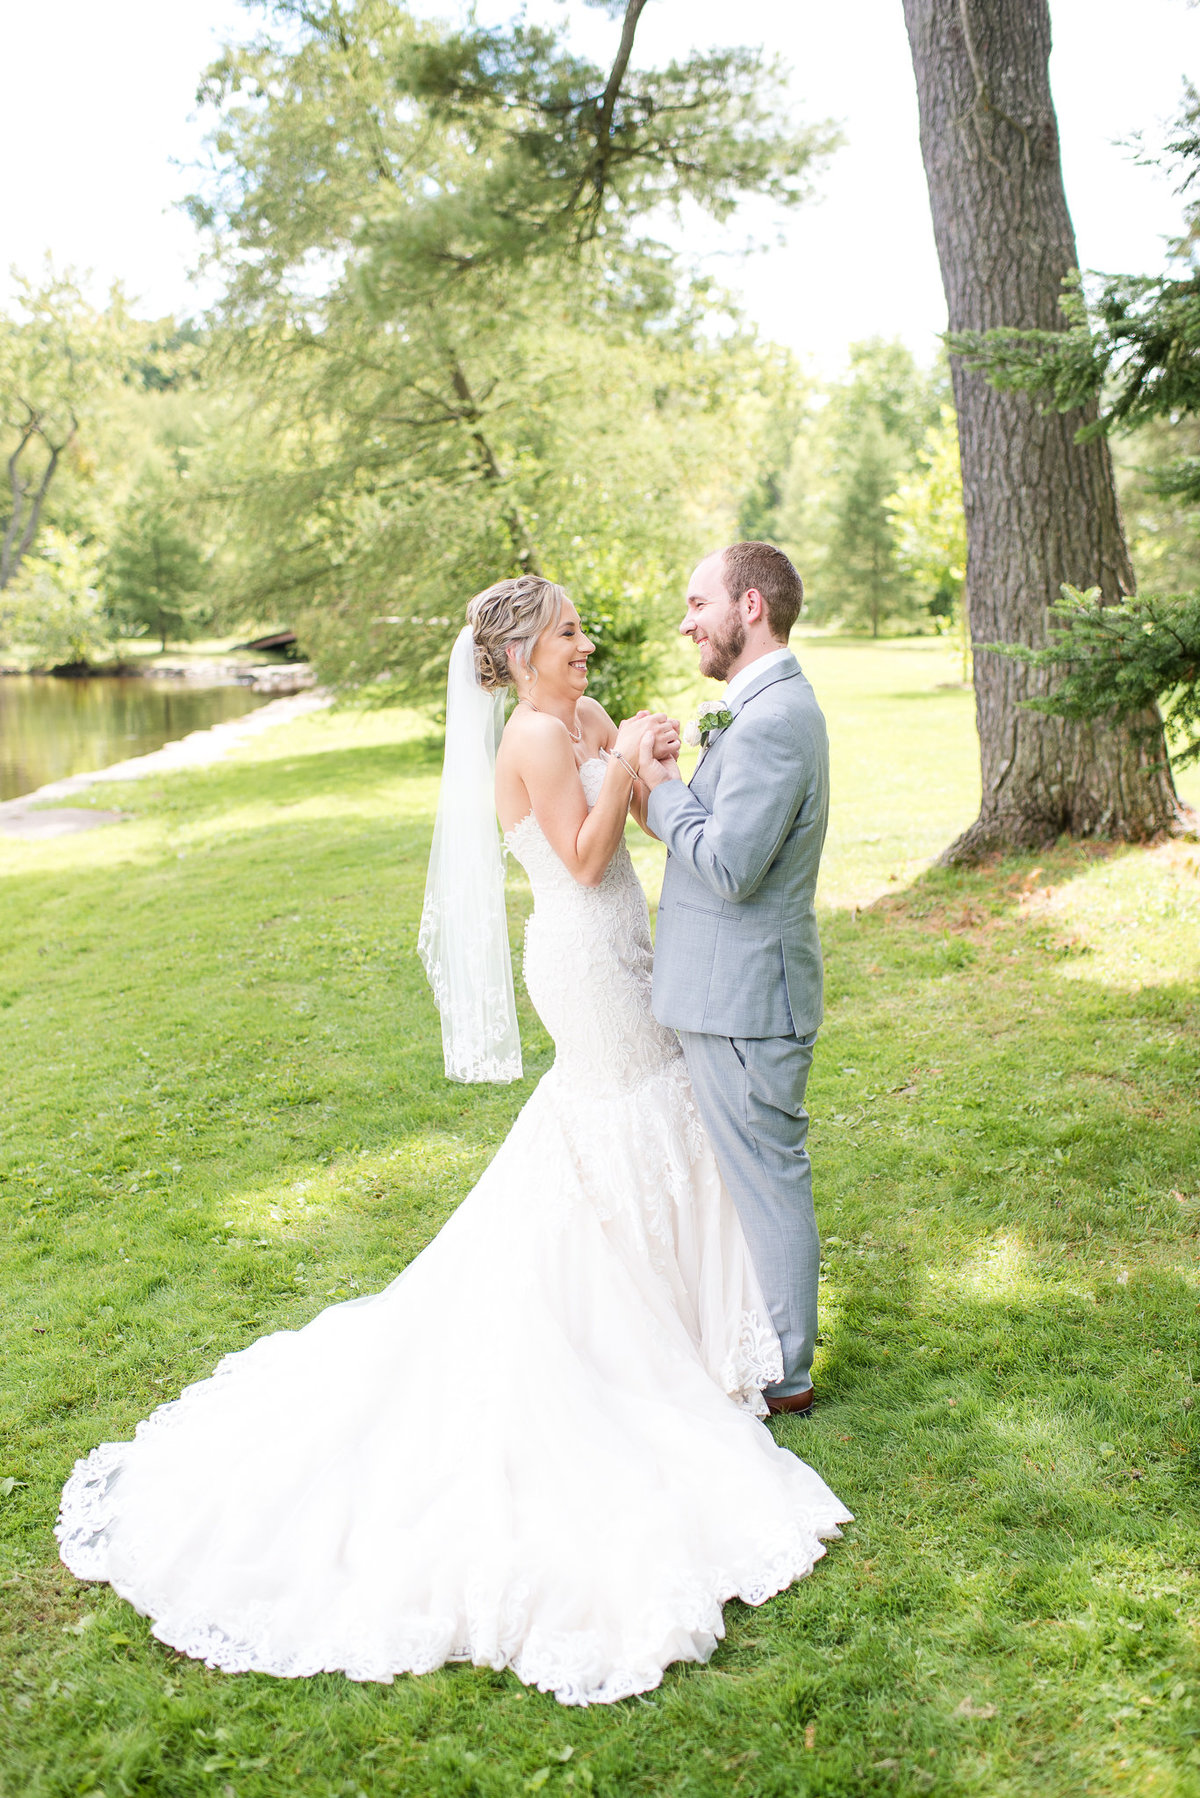 danielle kristine photography- Shane + Nickis' wedding-10